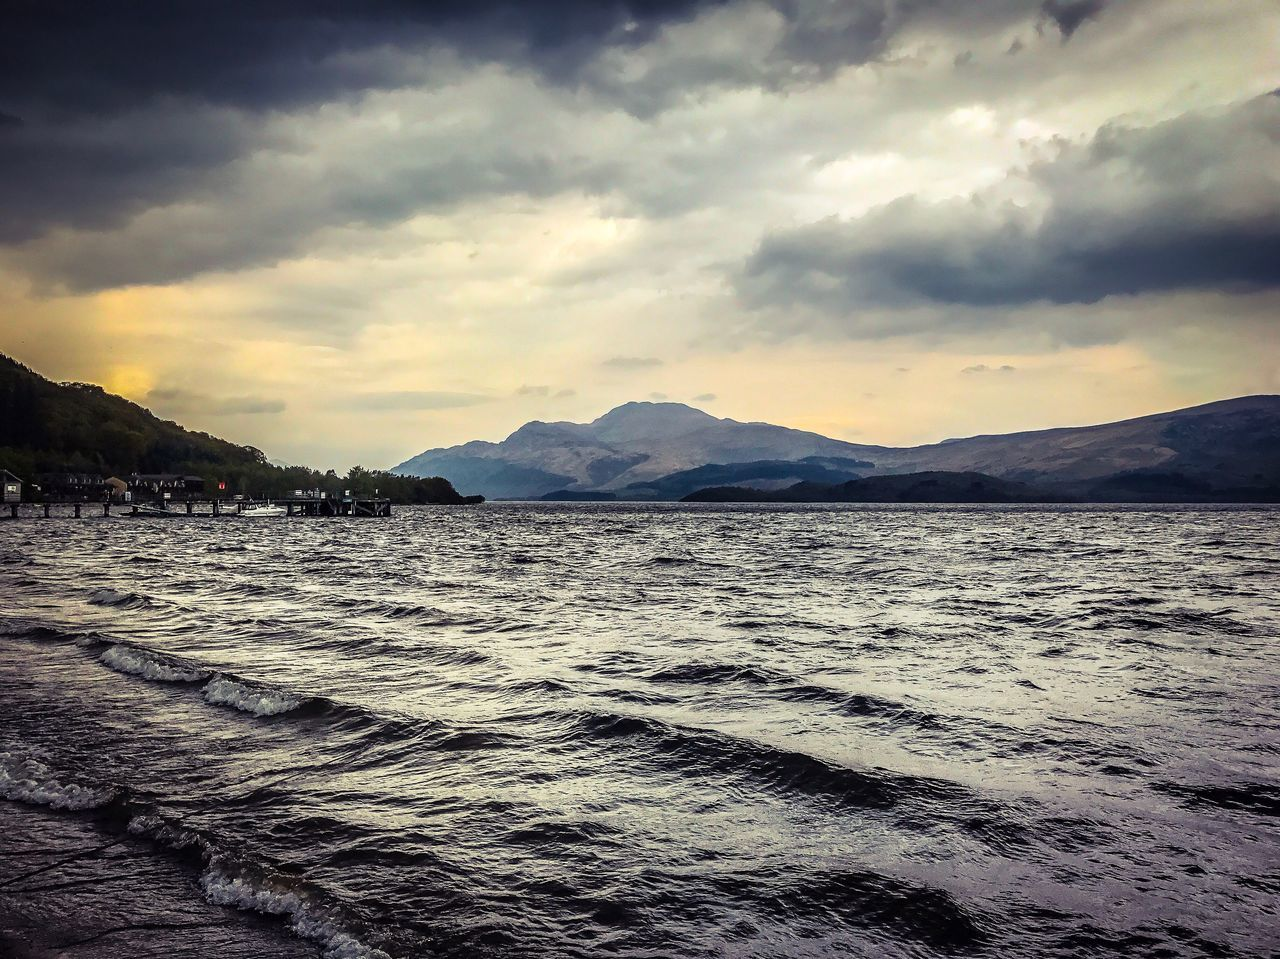 LochLomond Loch  Mountain Sky Beauty In Nature Cloud - Sky Nature Scenics Mountain Range Water Tranquility Tranquil Scene No People Sea Outdoors Waterfront Sunset Landscape Day Wave Power In Nature